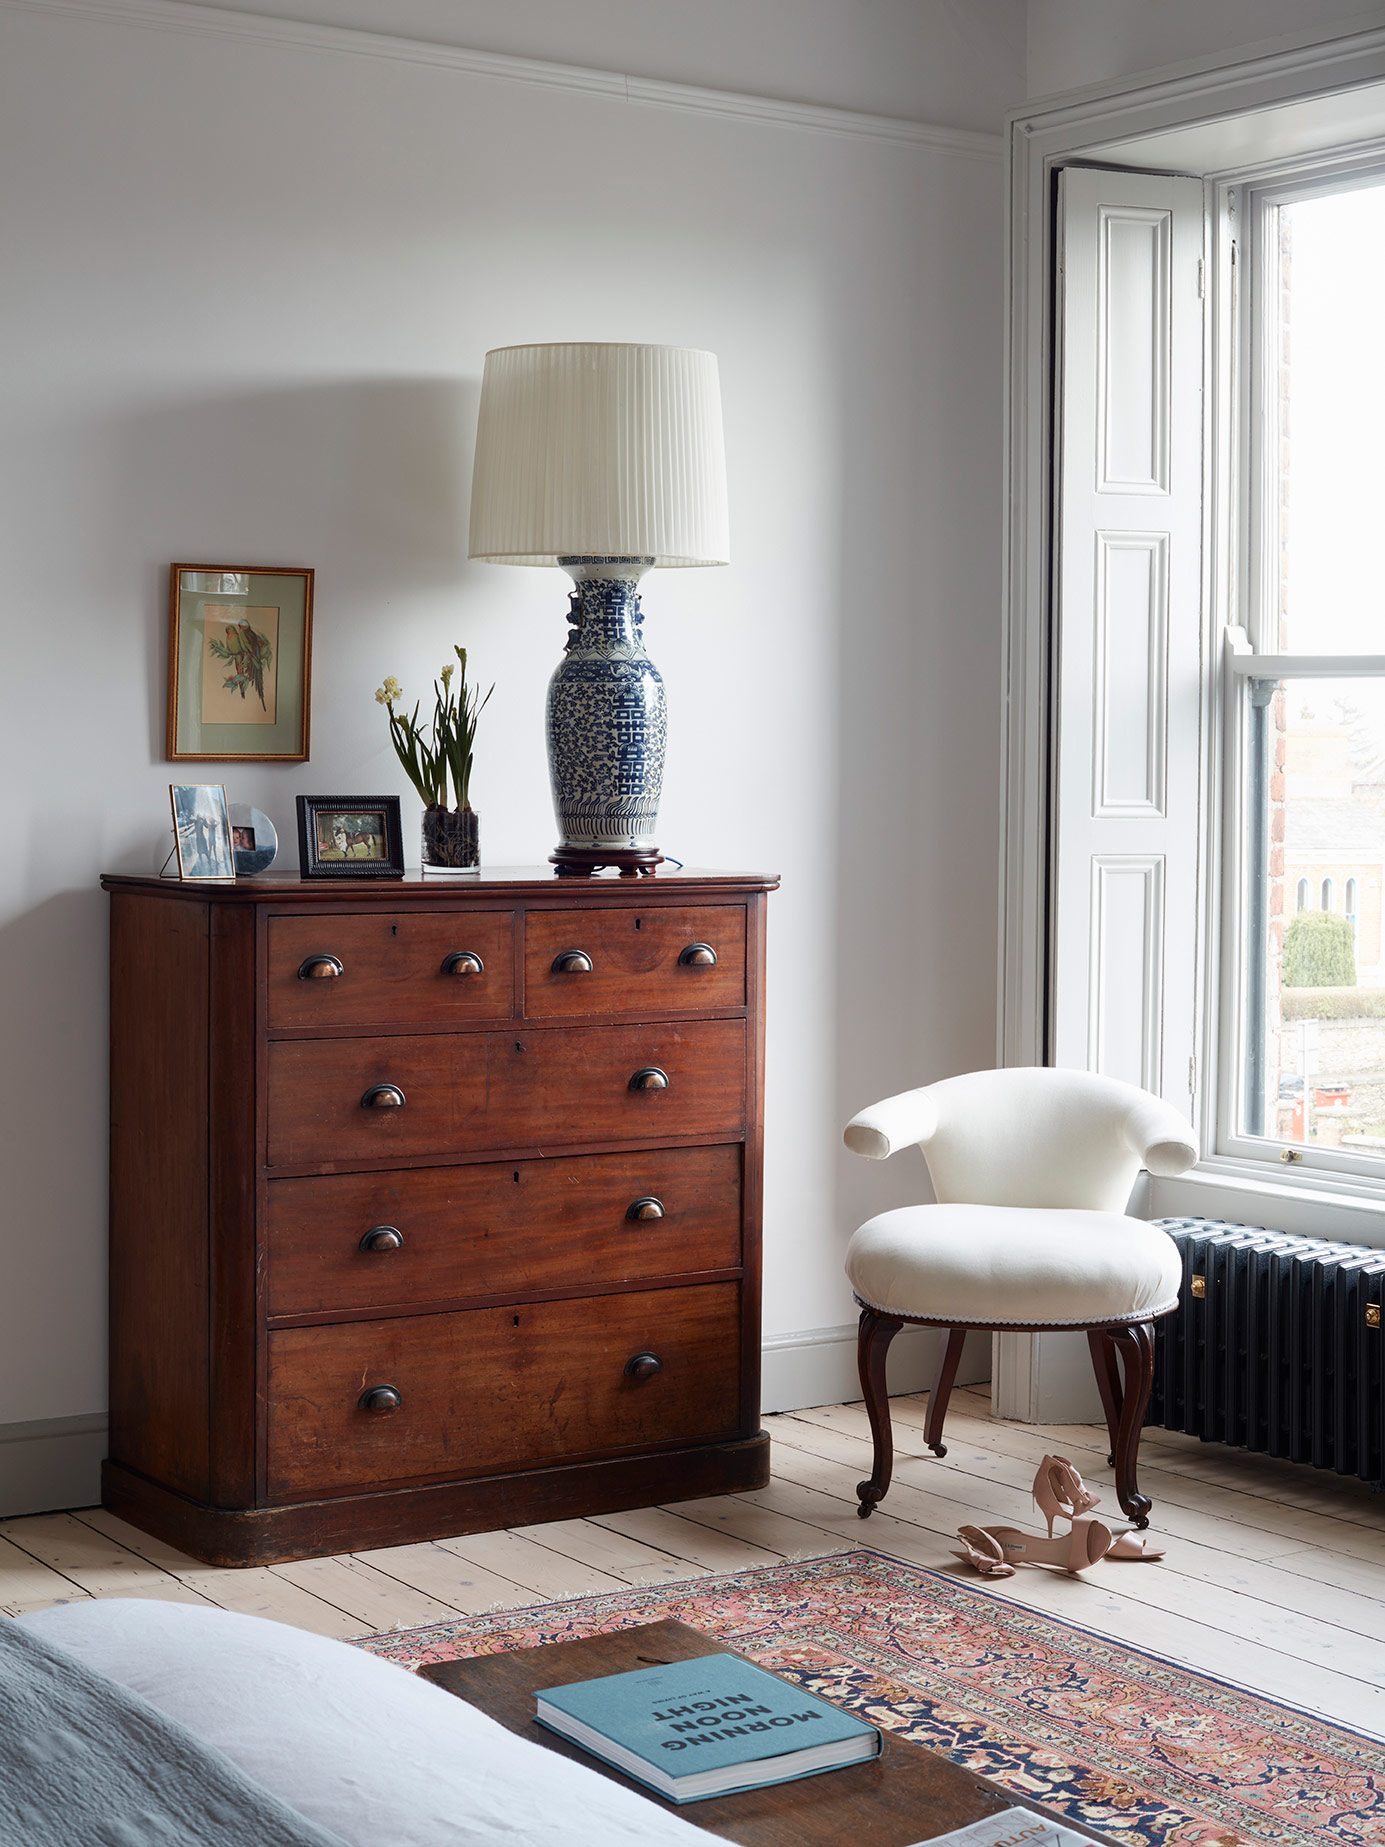 P&J – Rathgar – Bedroom Dresser